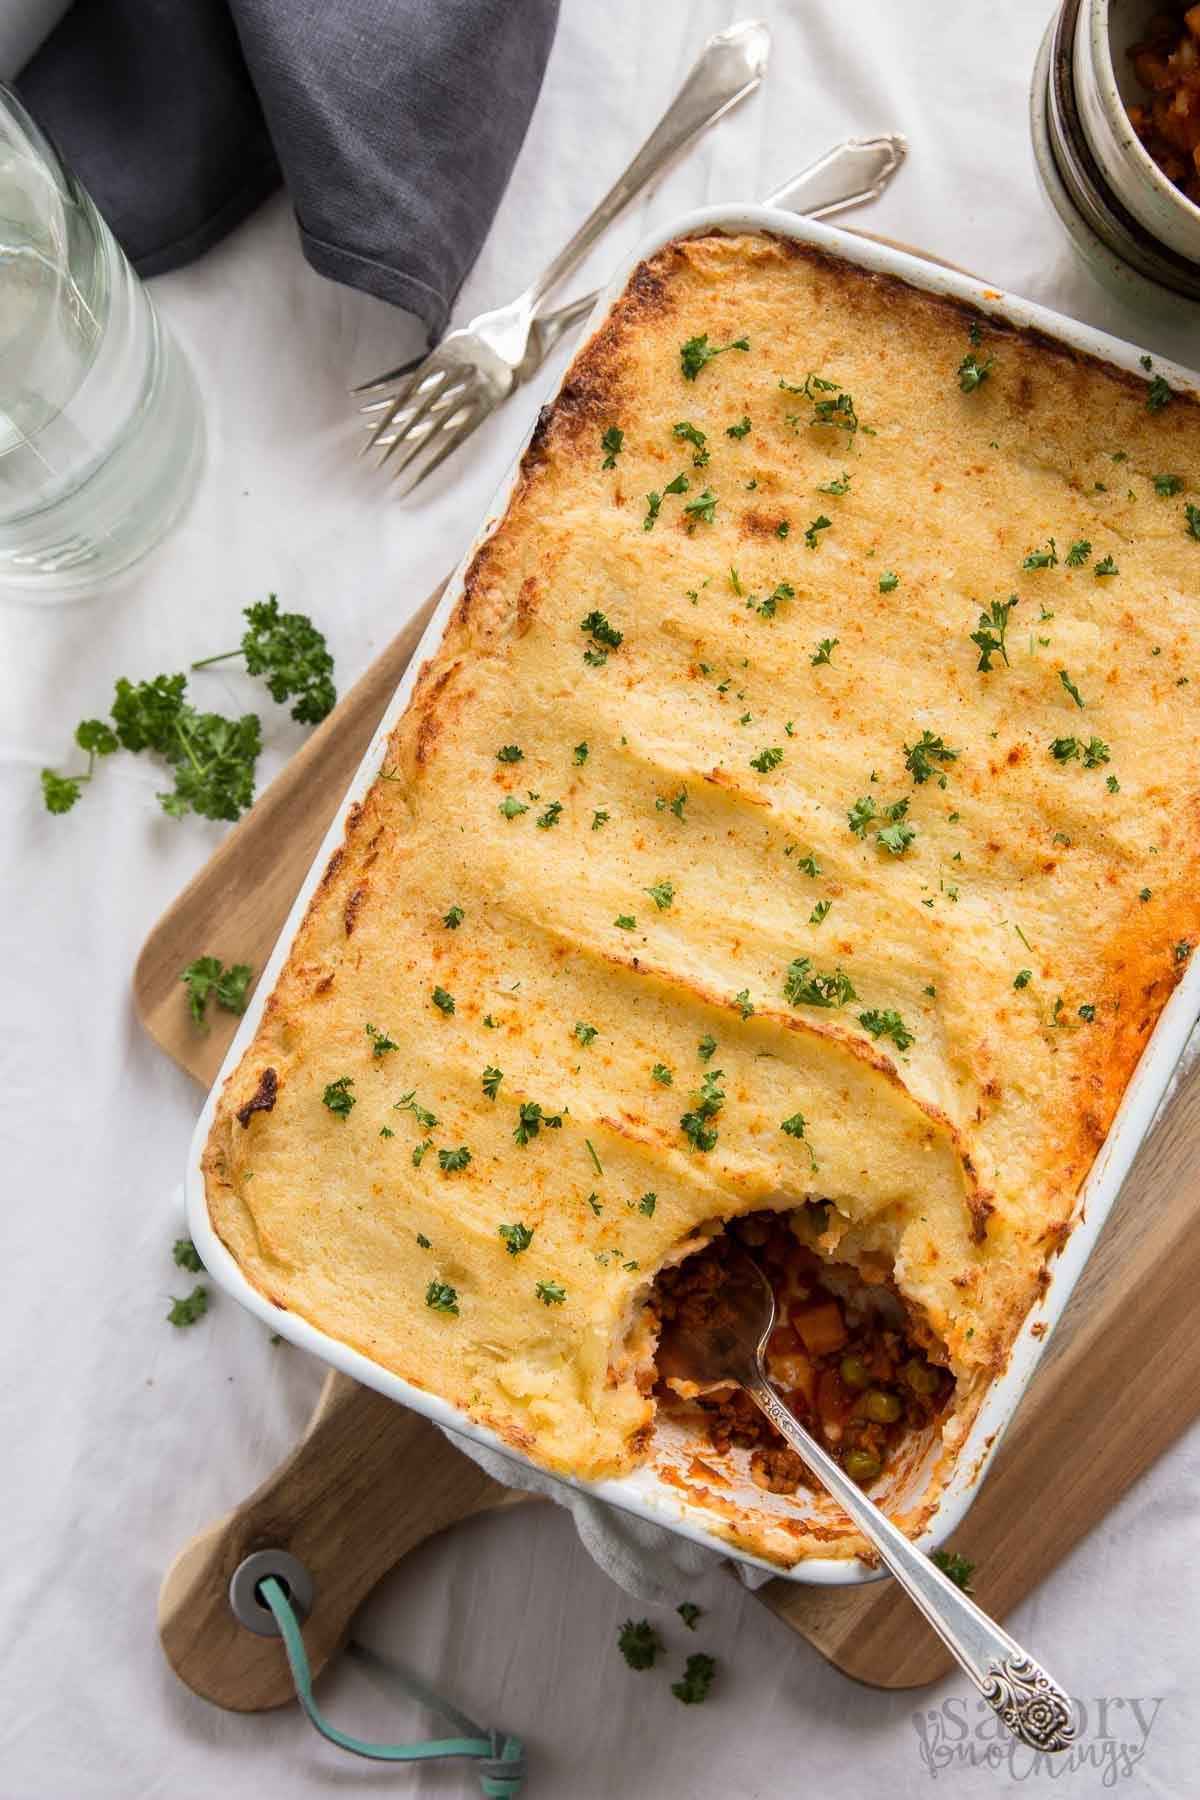 10 Most Recommended Simple Dinner Ideas For 2 easy cottage pie filled with healthy vegetables savory nothings 2021